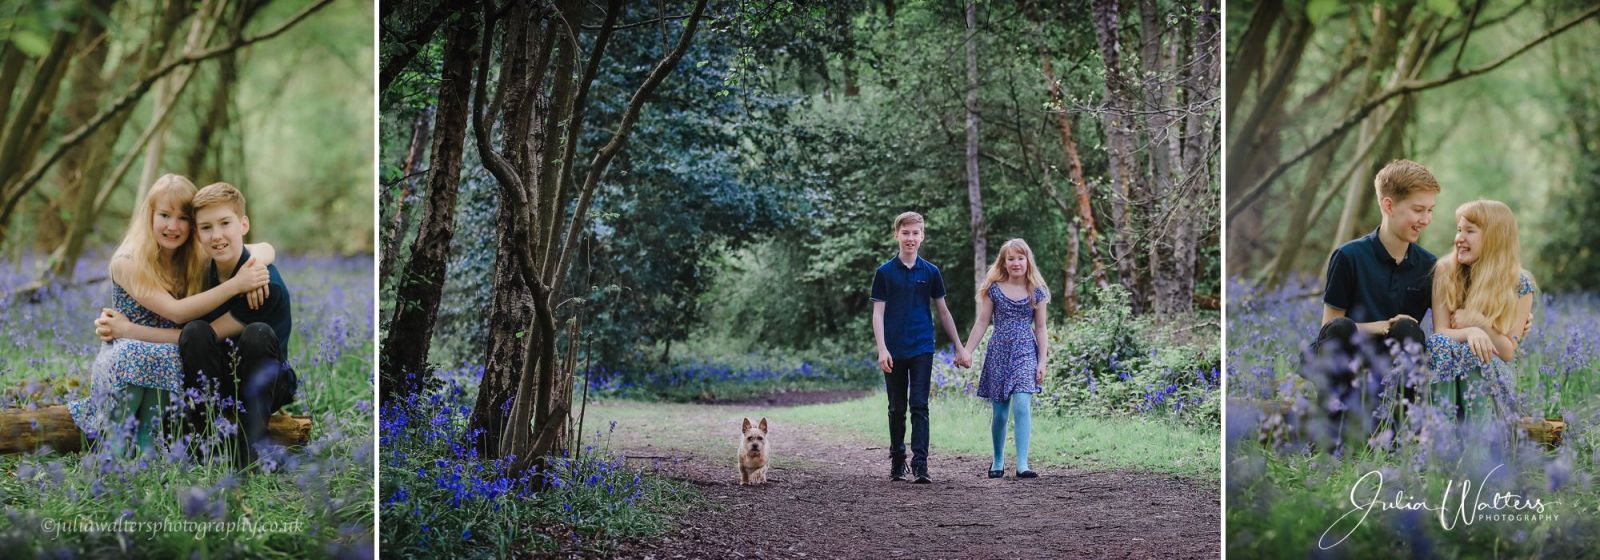 woodland bluebell location photography